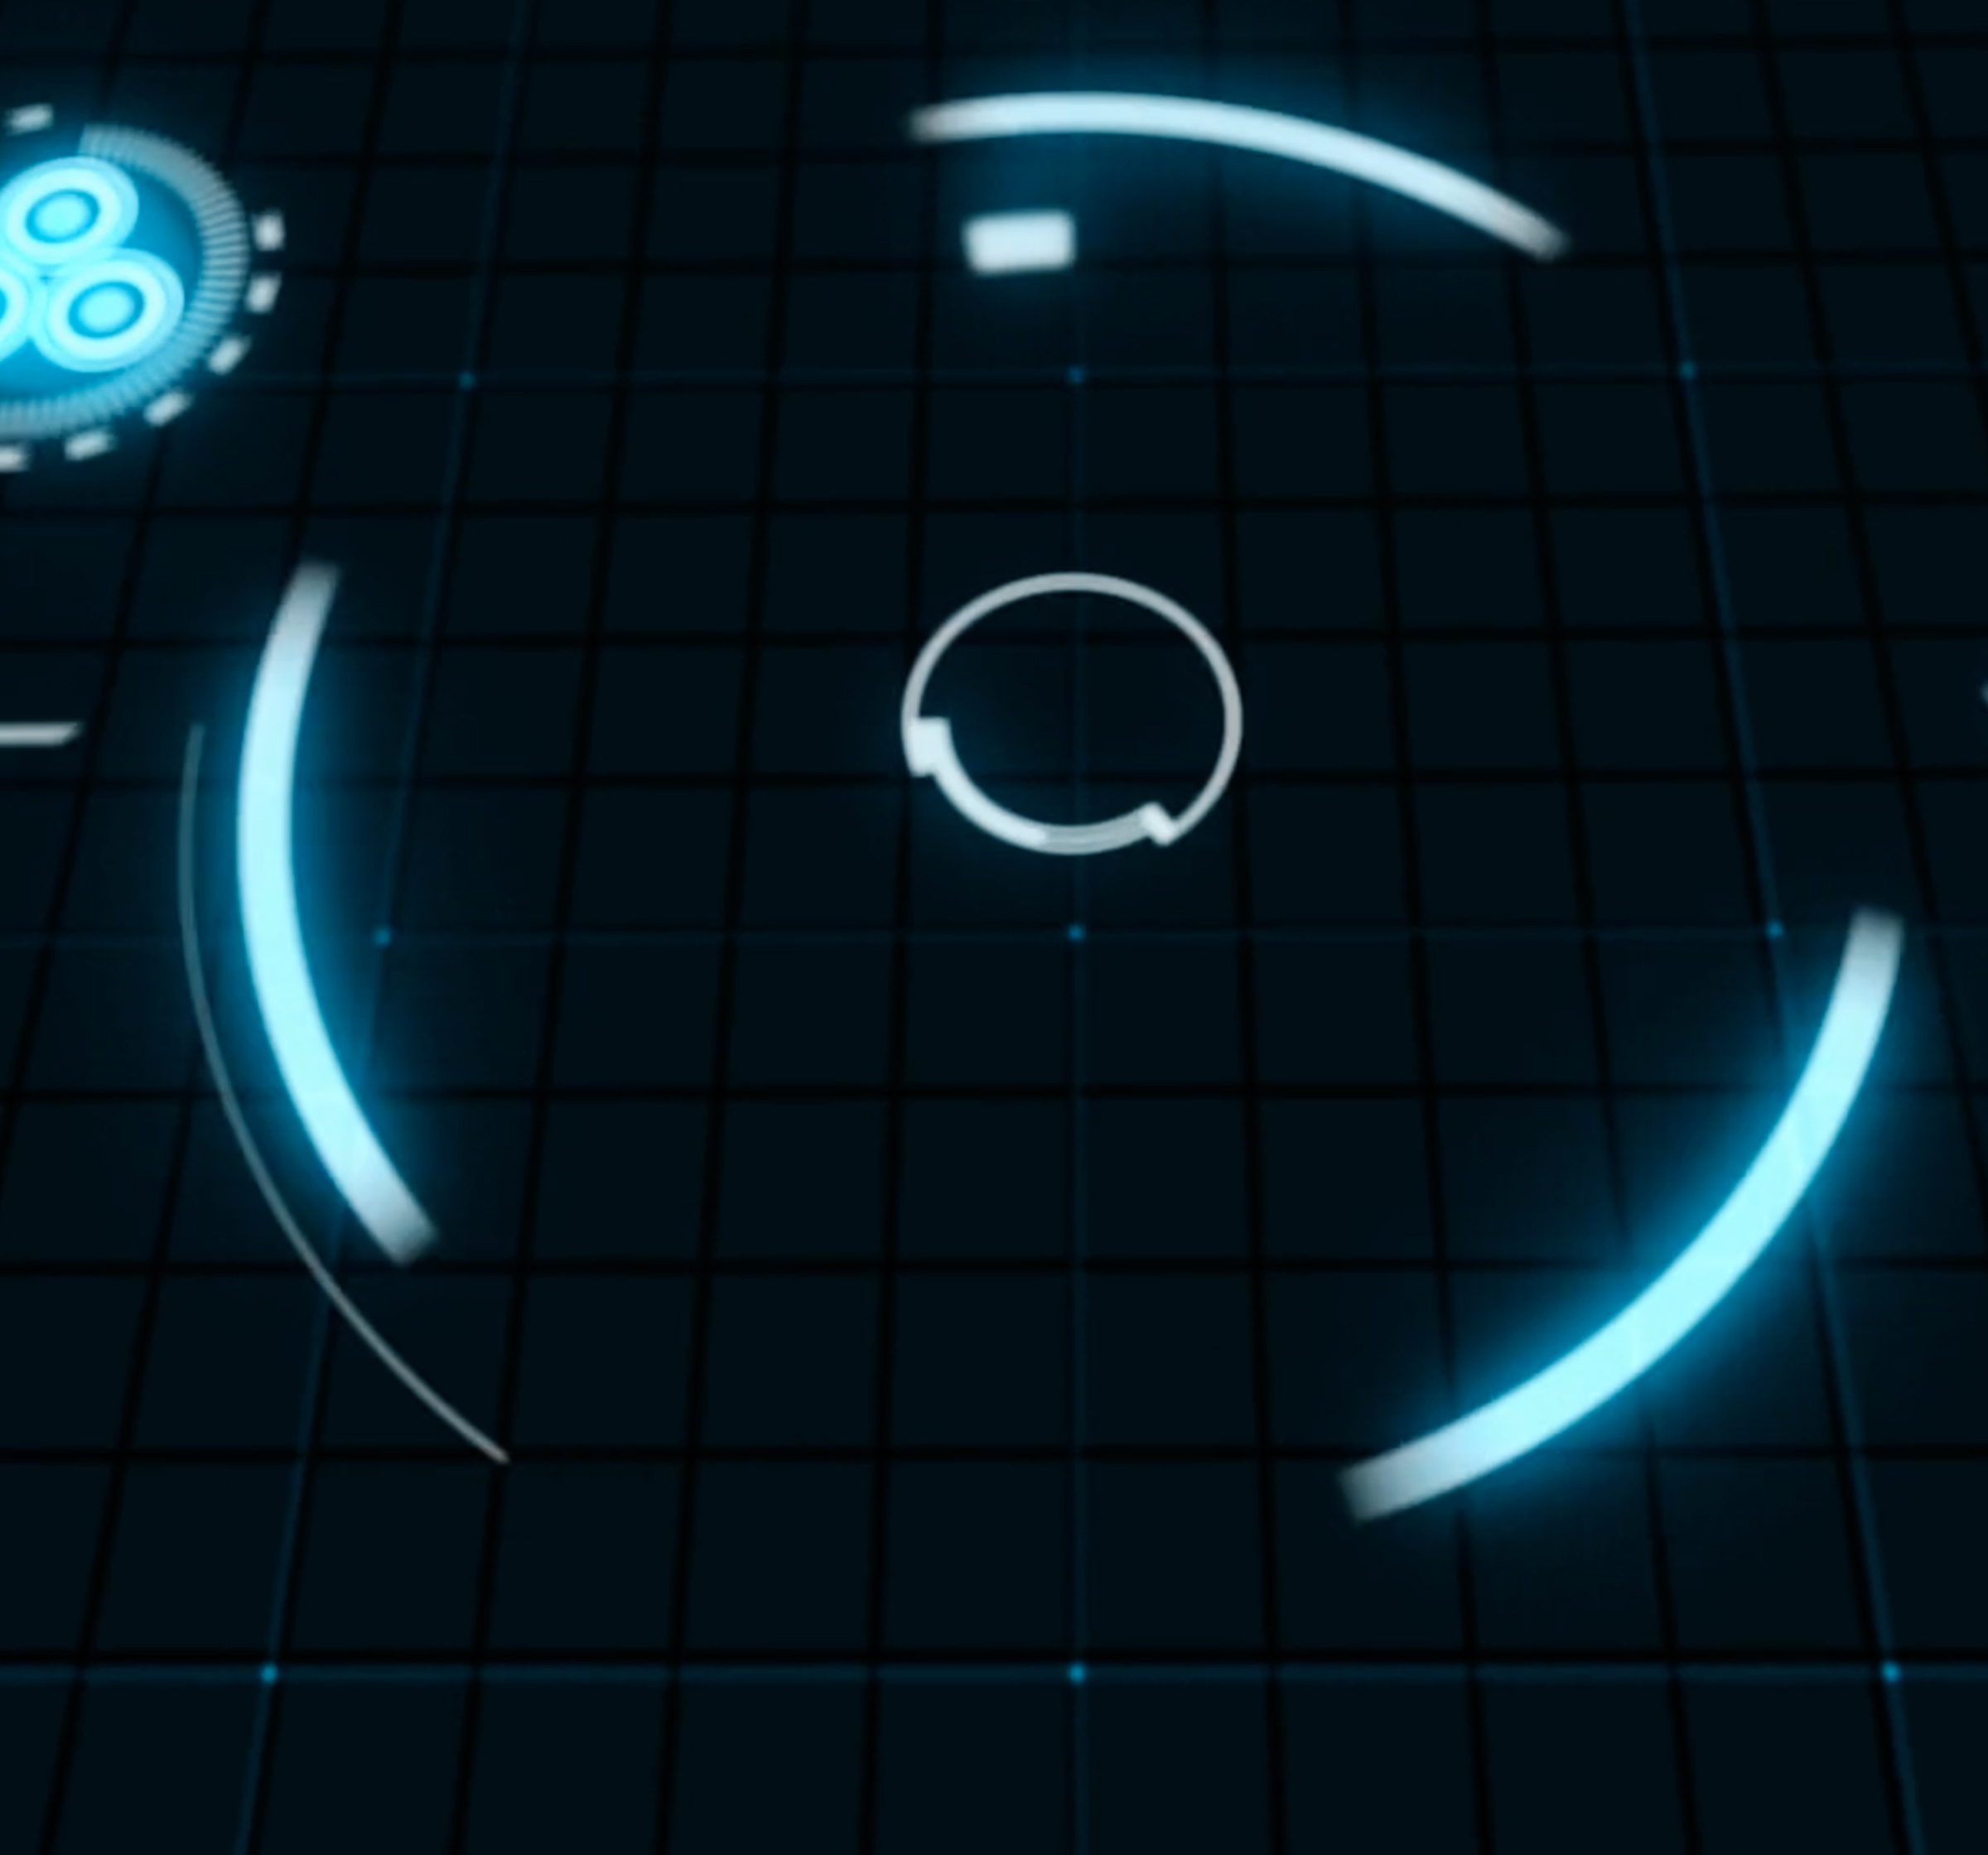 Heads Up Display being revealed in animation